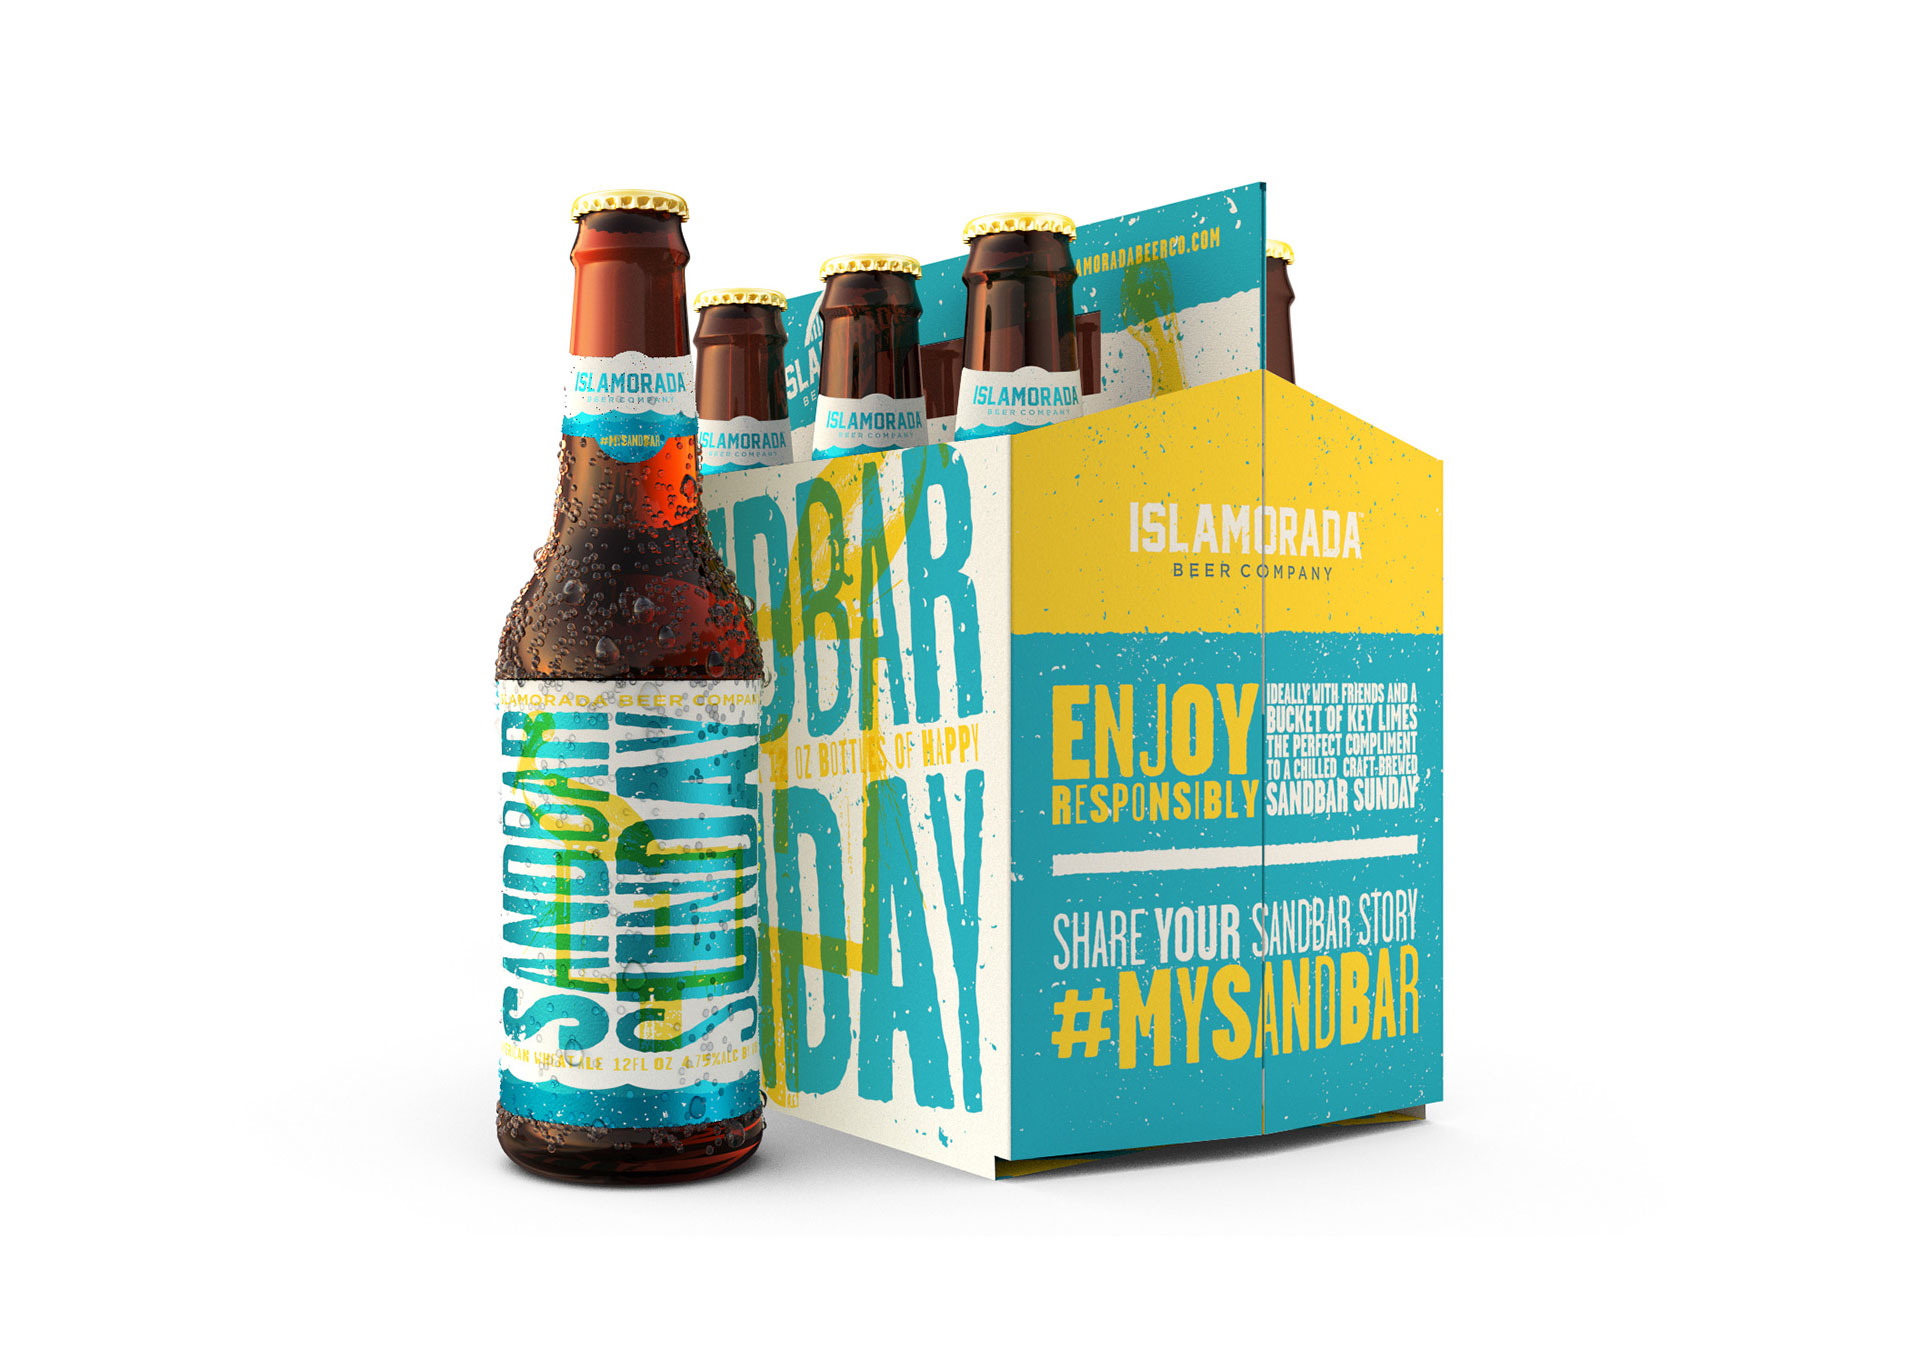 Islamorada Beer Co Sandbar Sunday